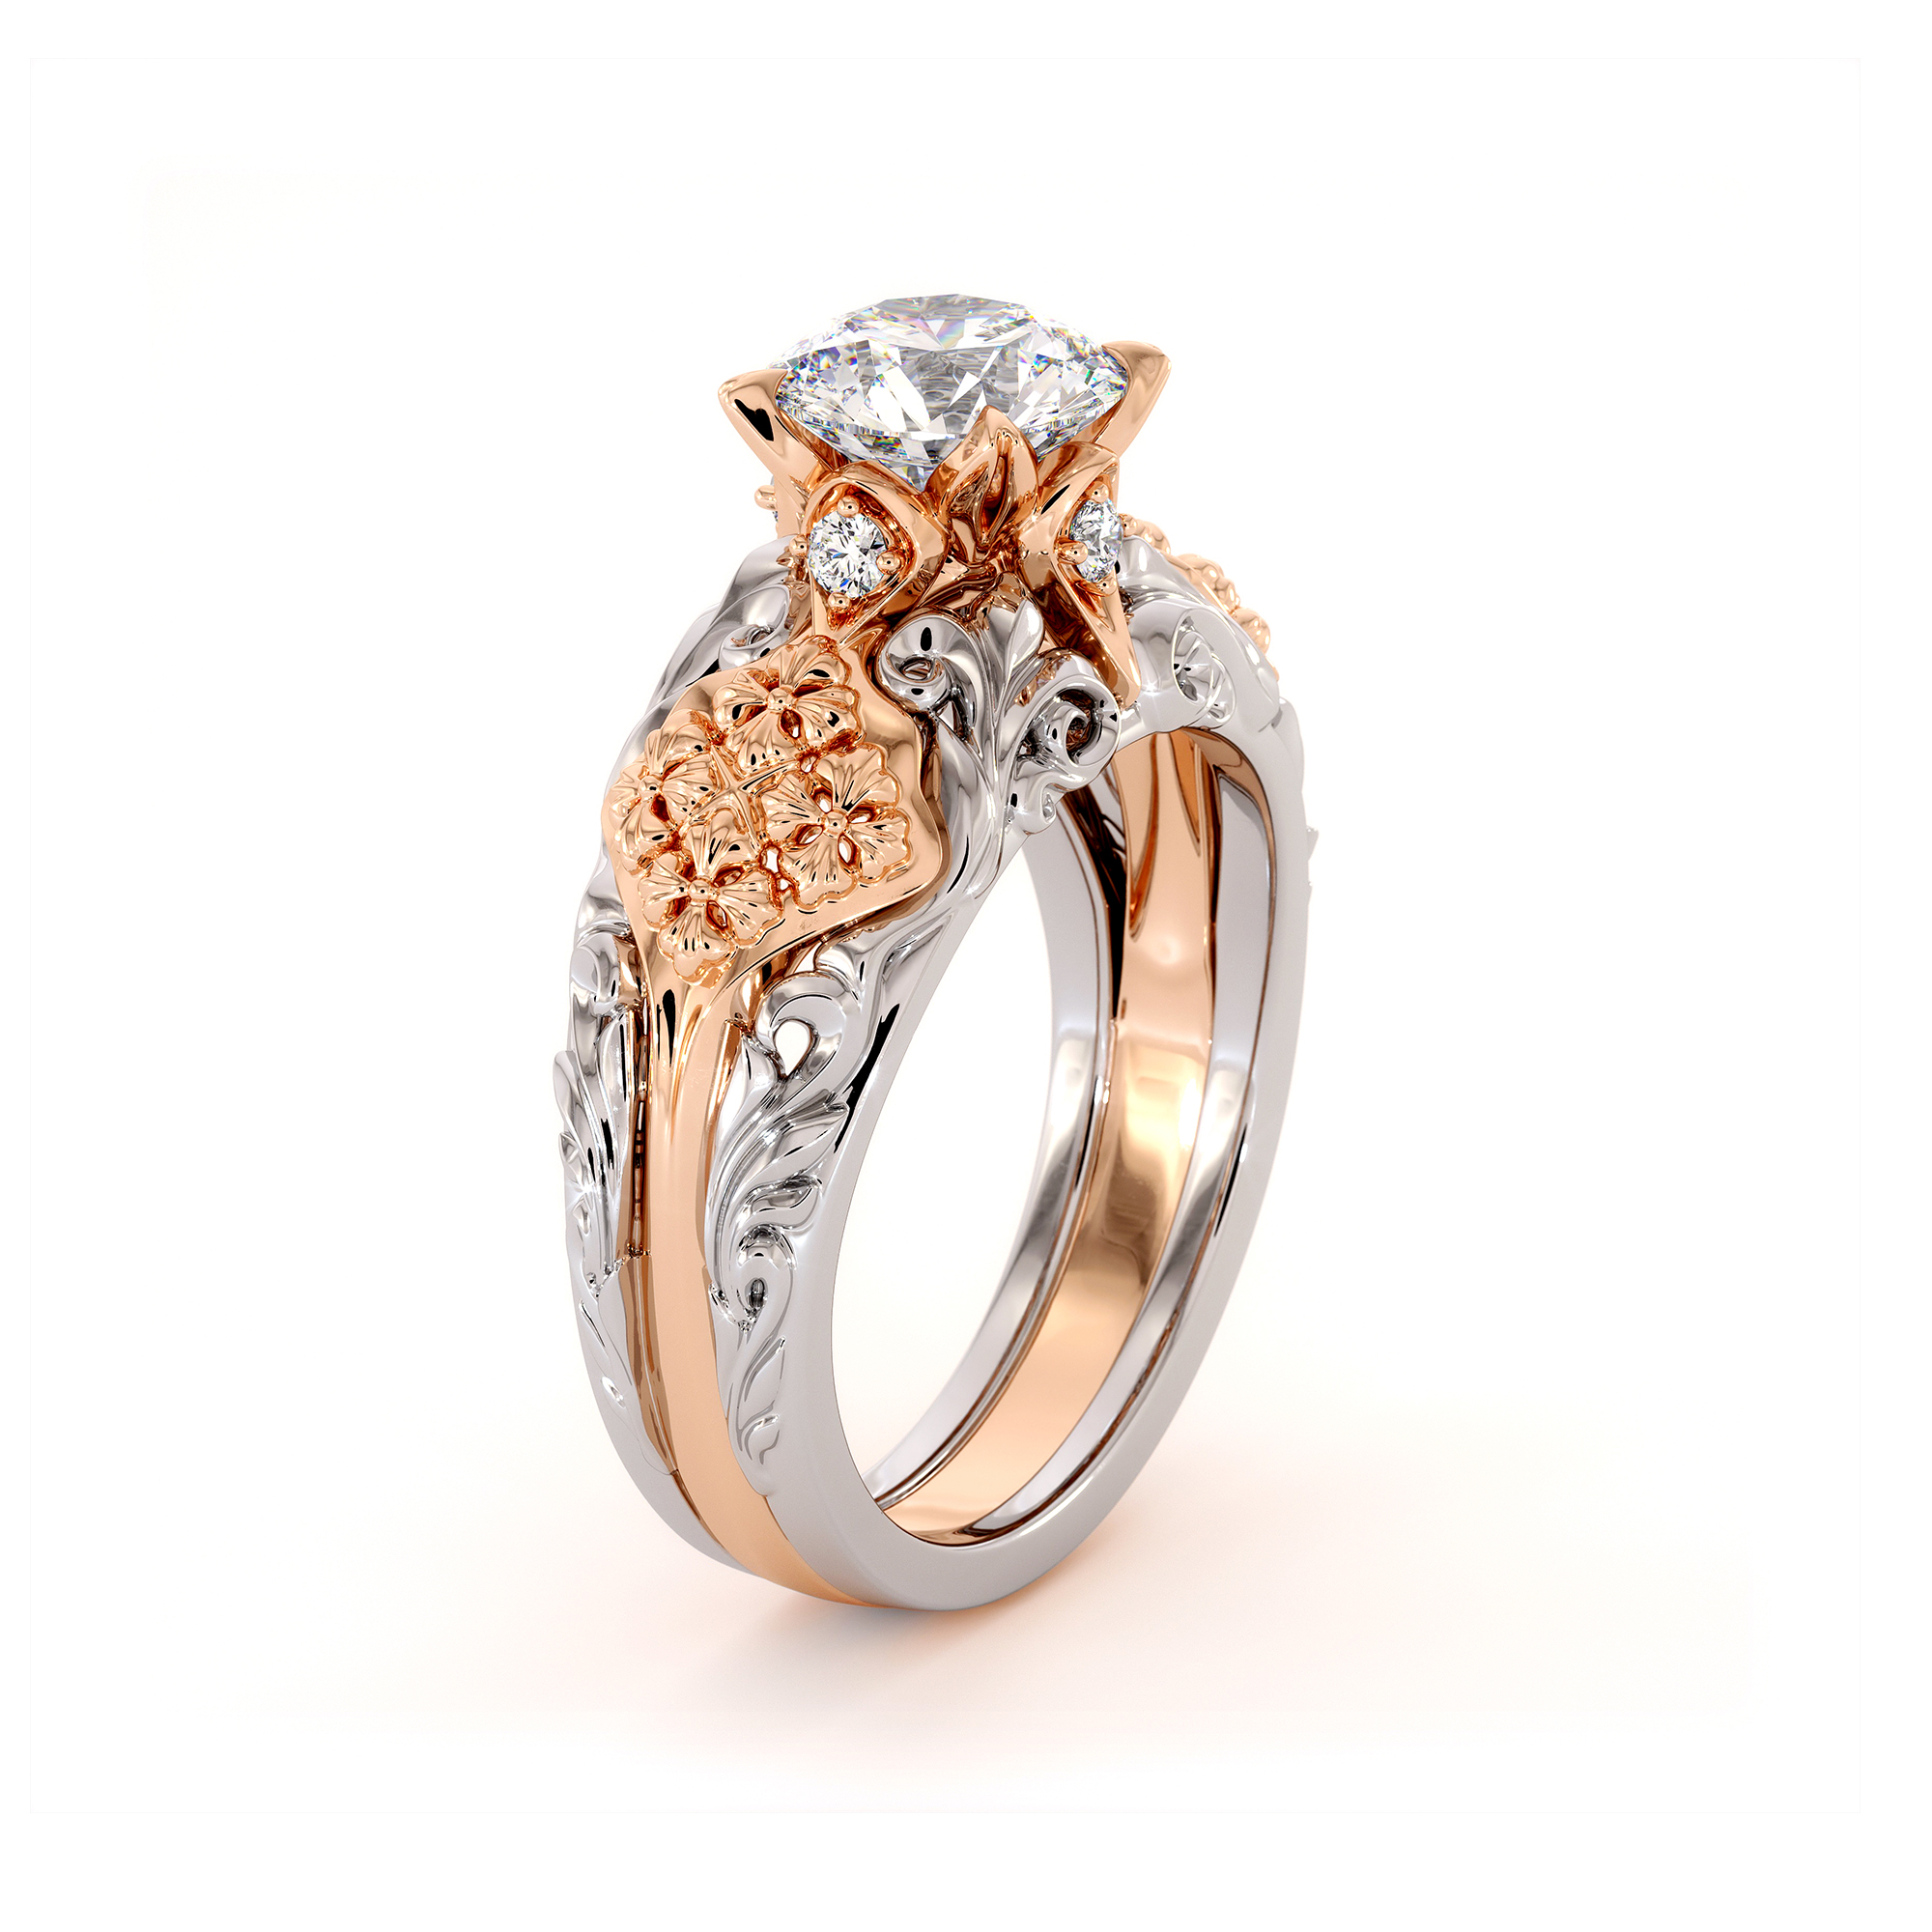 Vintage Round Moissanite Engagement Ring Two Tone Gold Engagement Ring